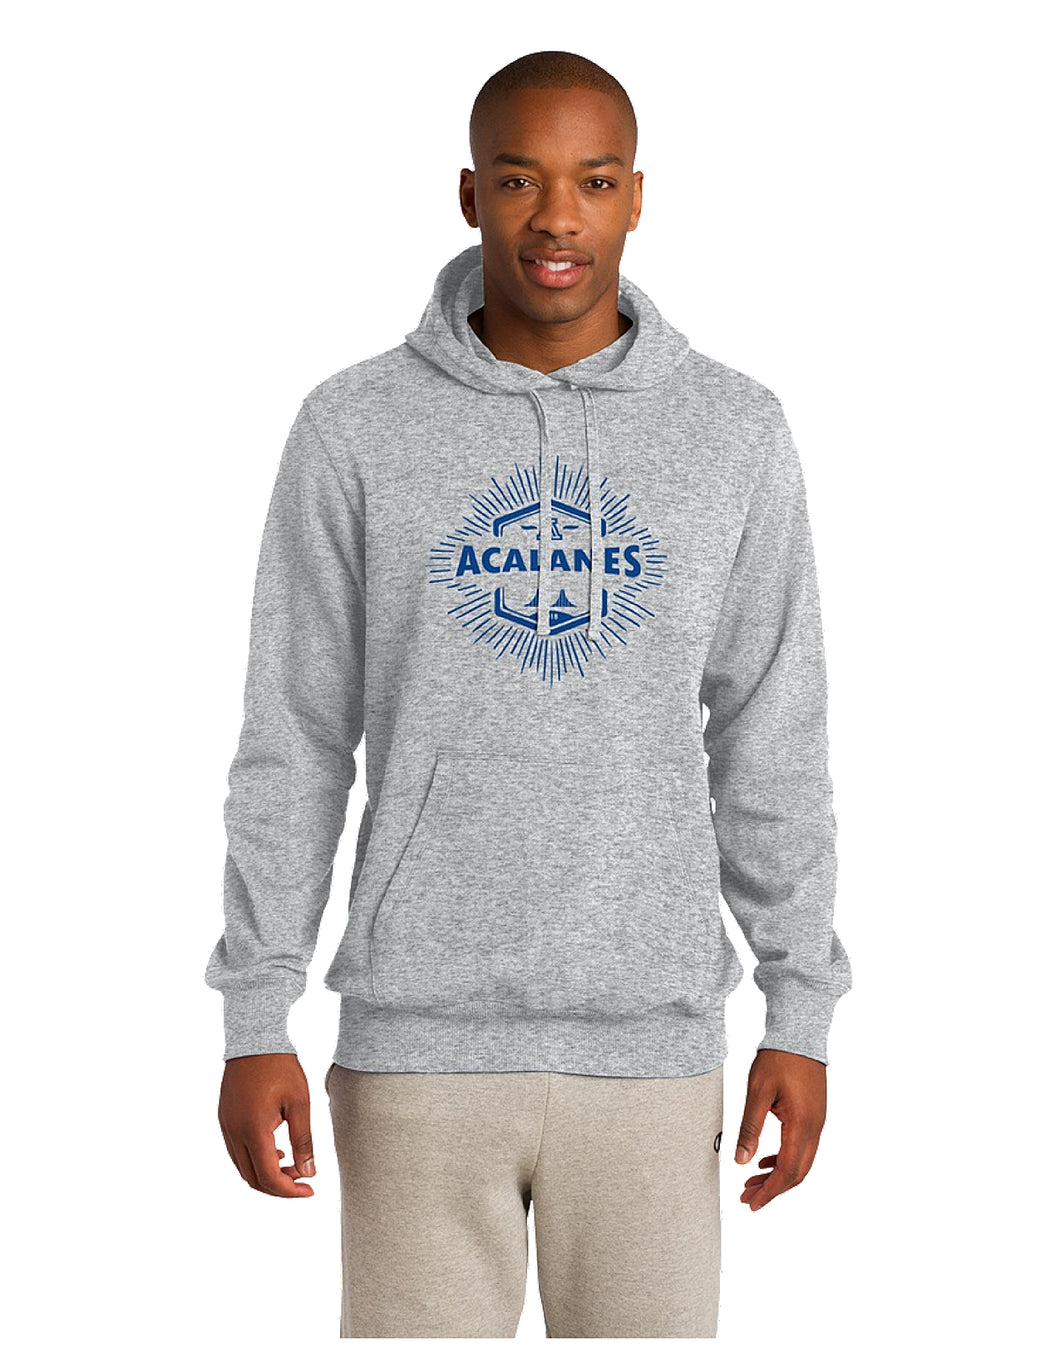 Sport-Tek® Pullover Hooded Sweatshirt Grey with Royal Screen Printed Bridge Logo